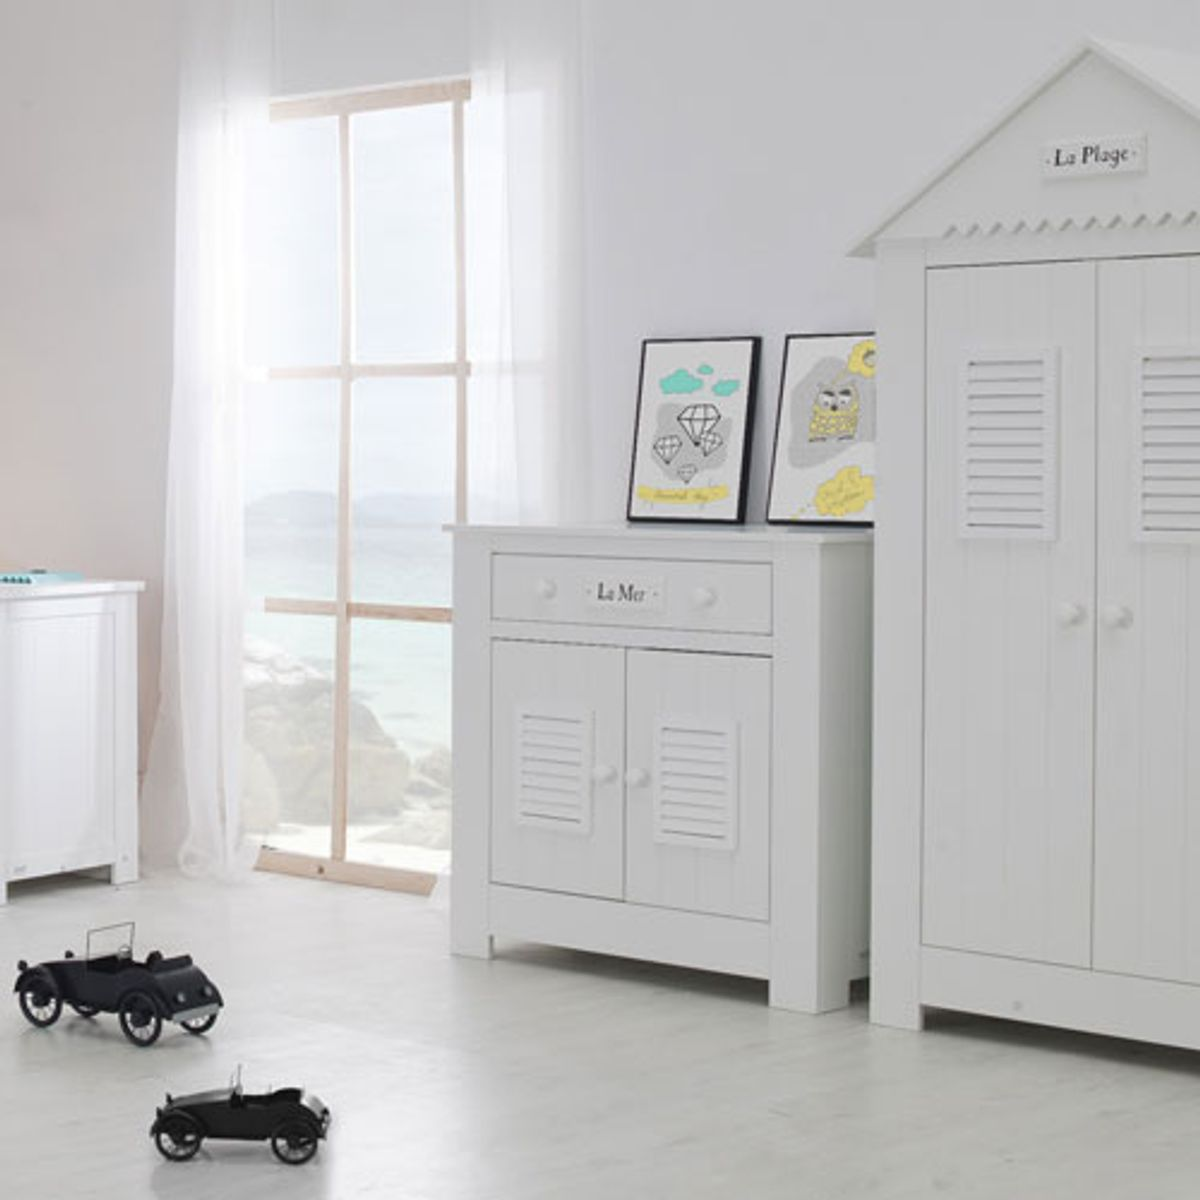 armoire penderie enfant cabine plage bois blanc 2p. Black Bedroom Furniture Sets. Home Design Ideas